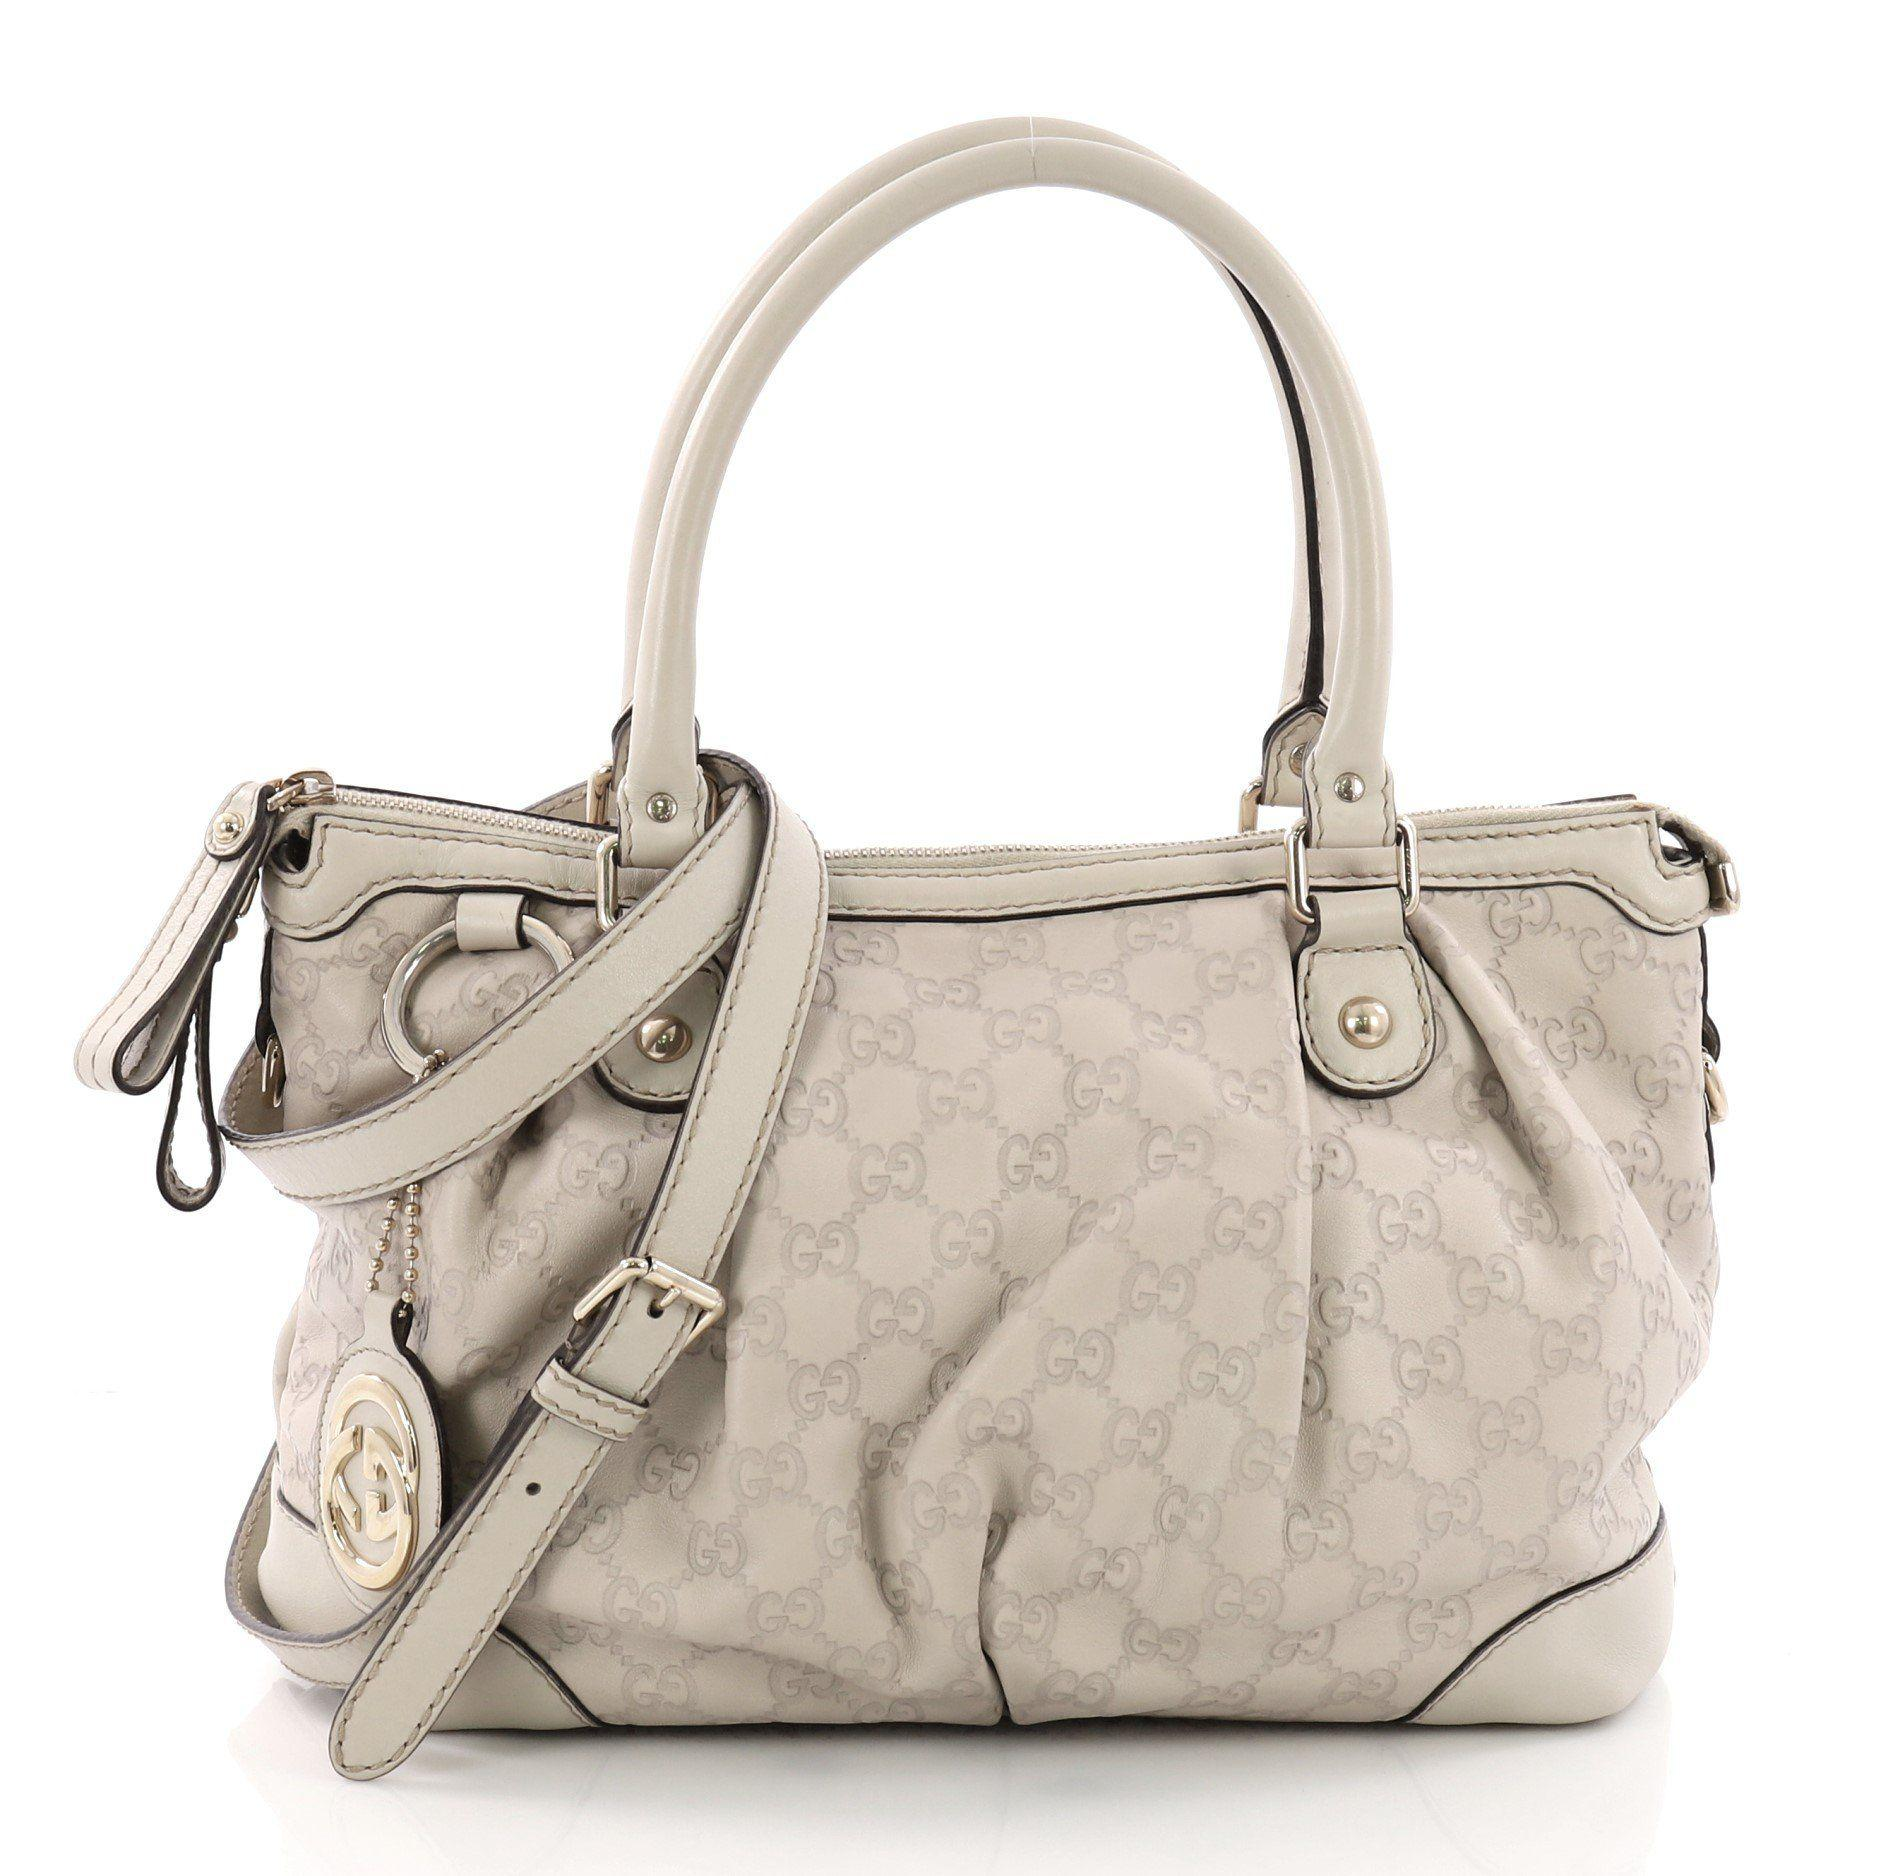 a95368e880d0 Gucci. Women's Pre Owned Sukey Top Handle Satchel Ssima Leather Medium